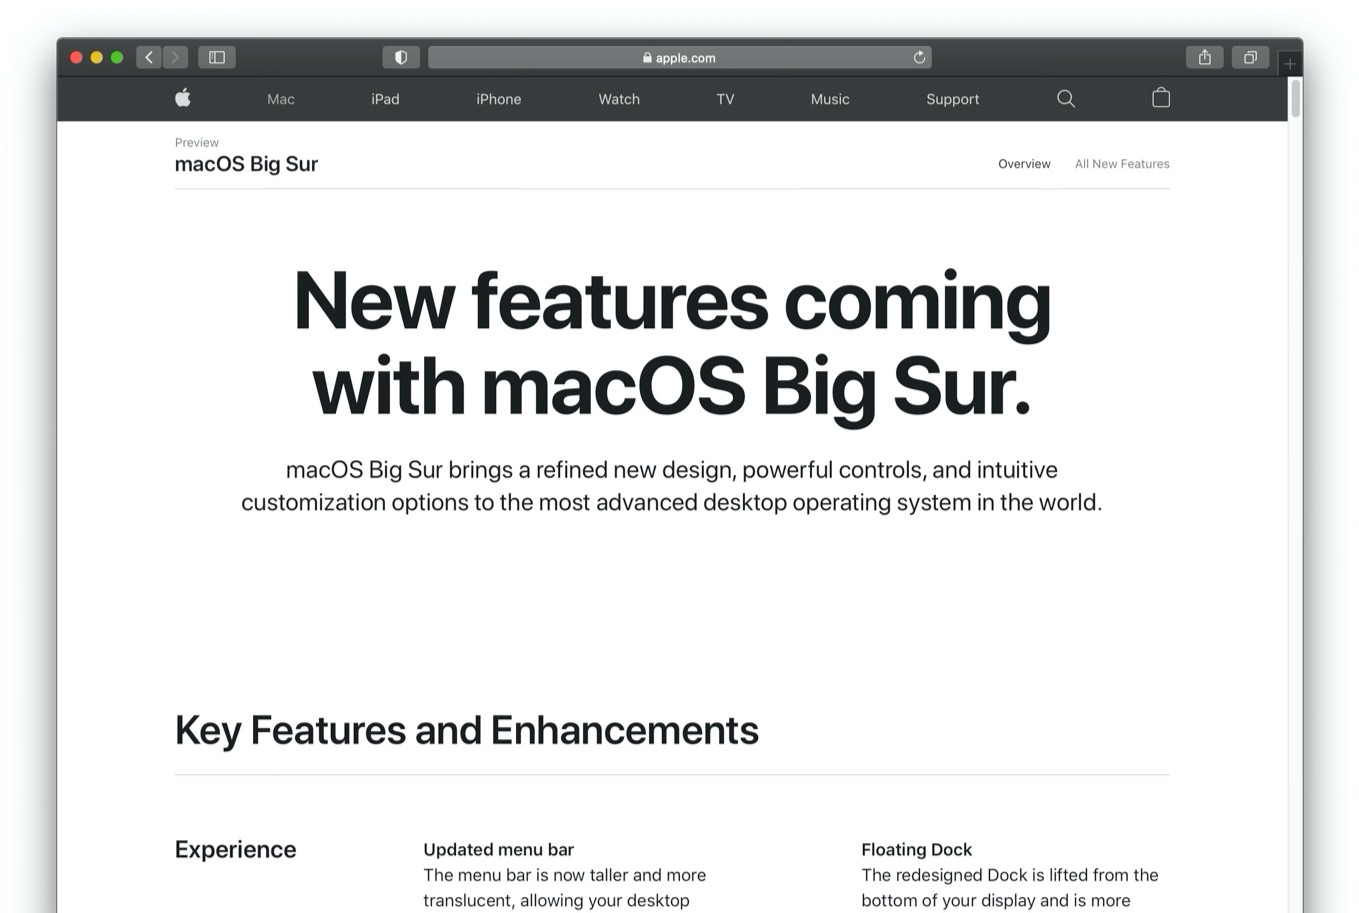 New features coming with macOS Big Sur.